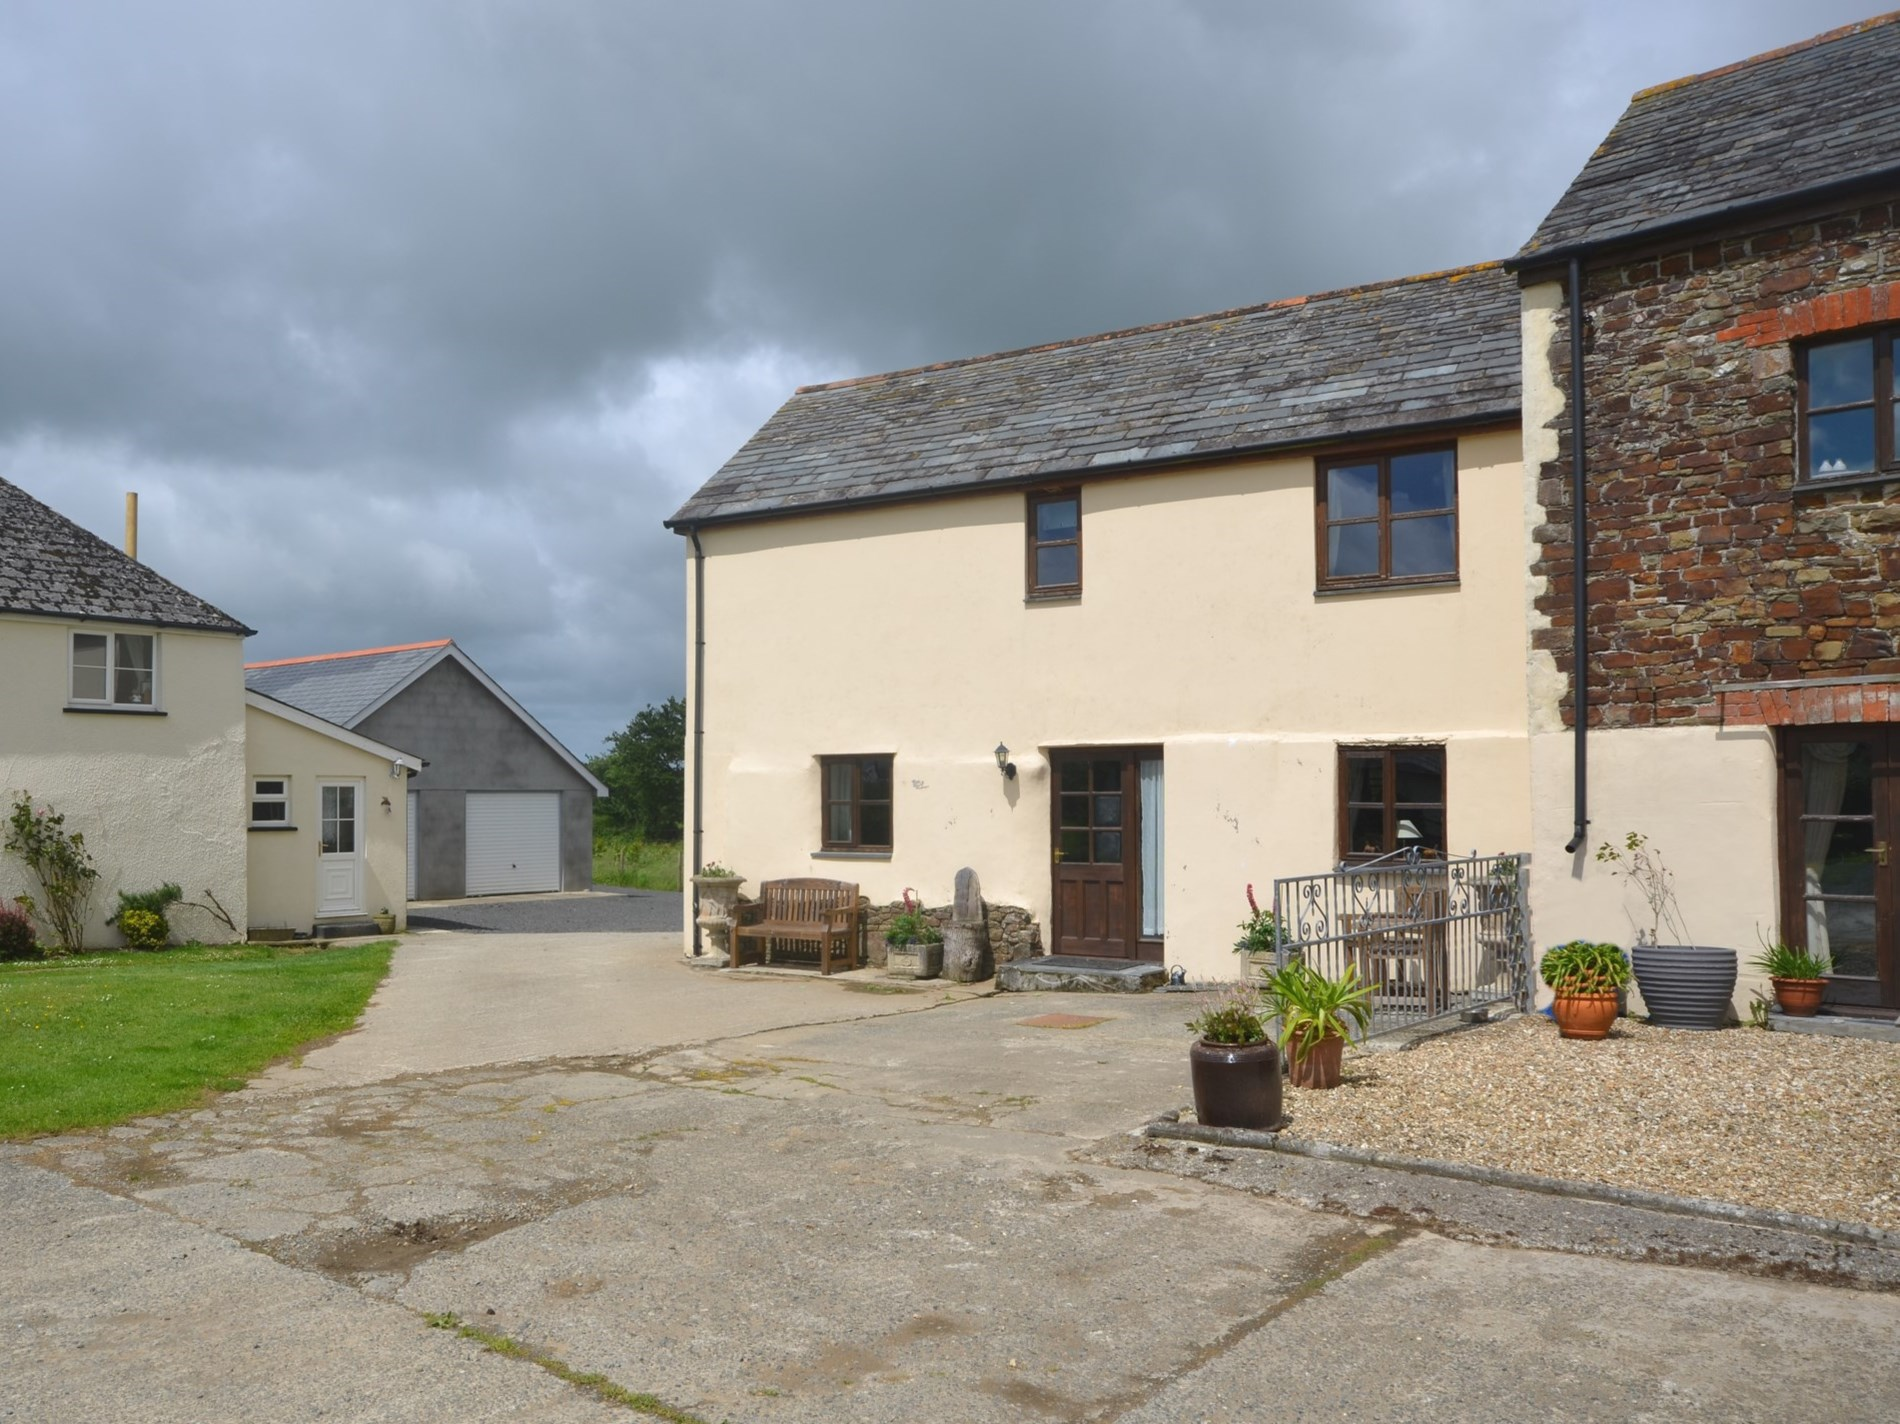 2 Bedroom Cottage in Holsworthy, Devon